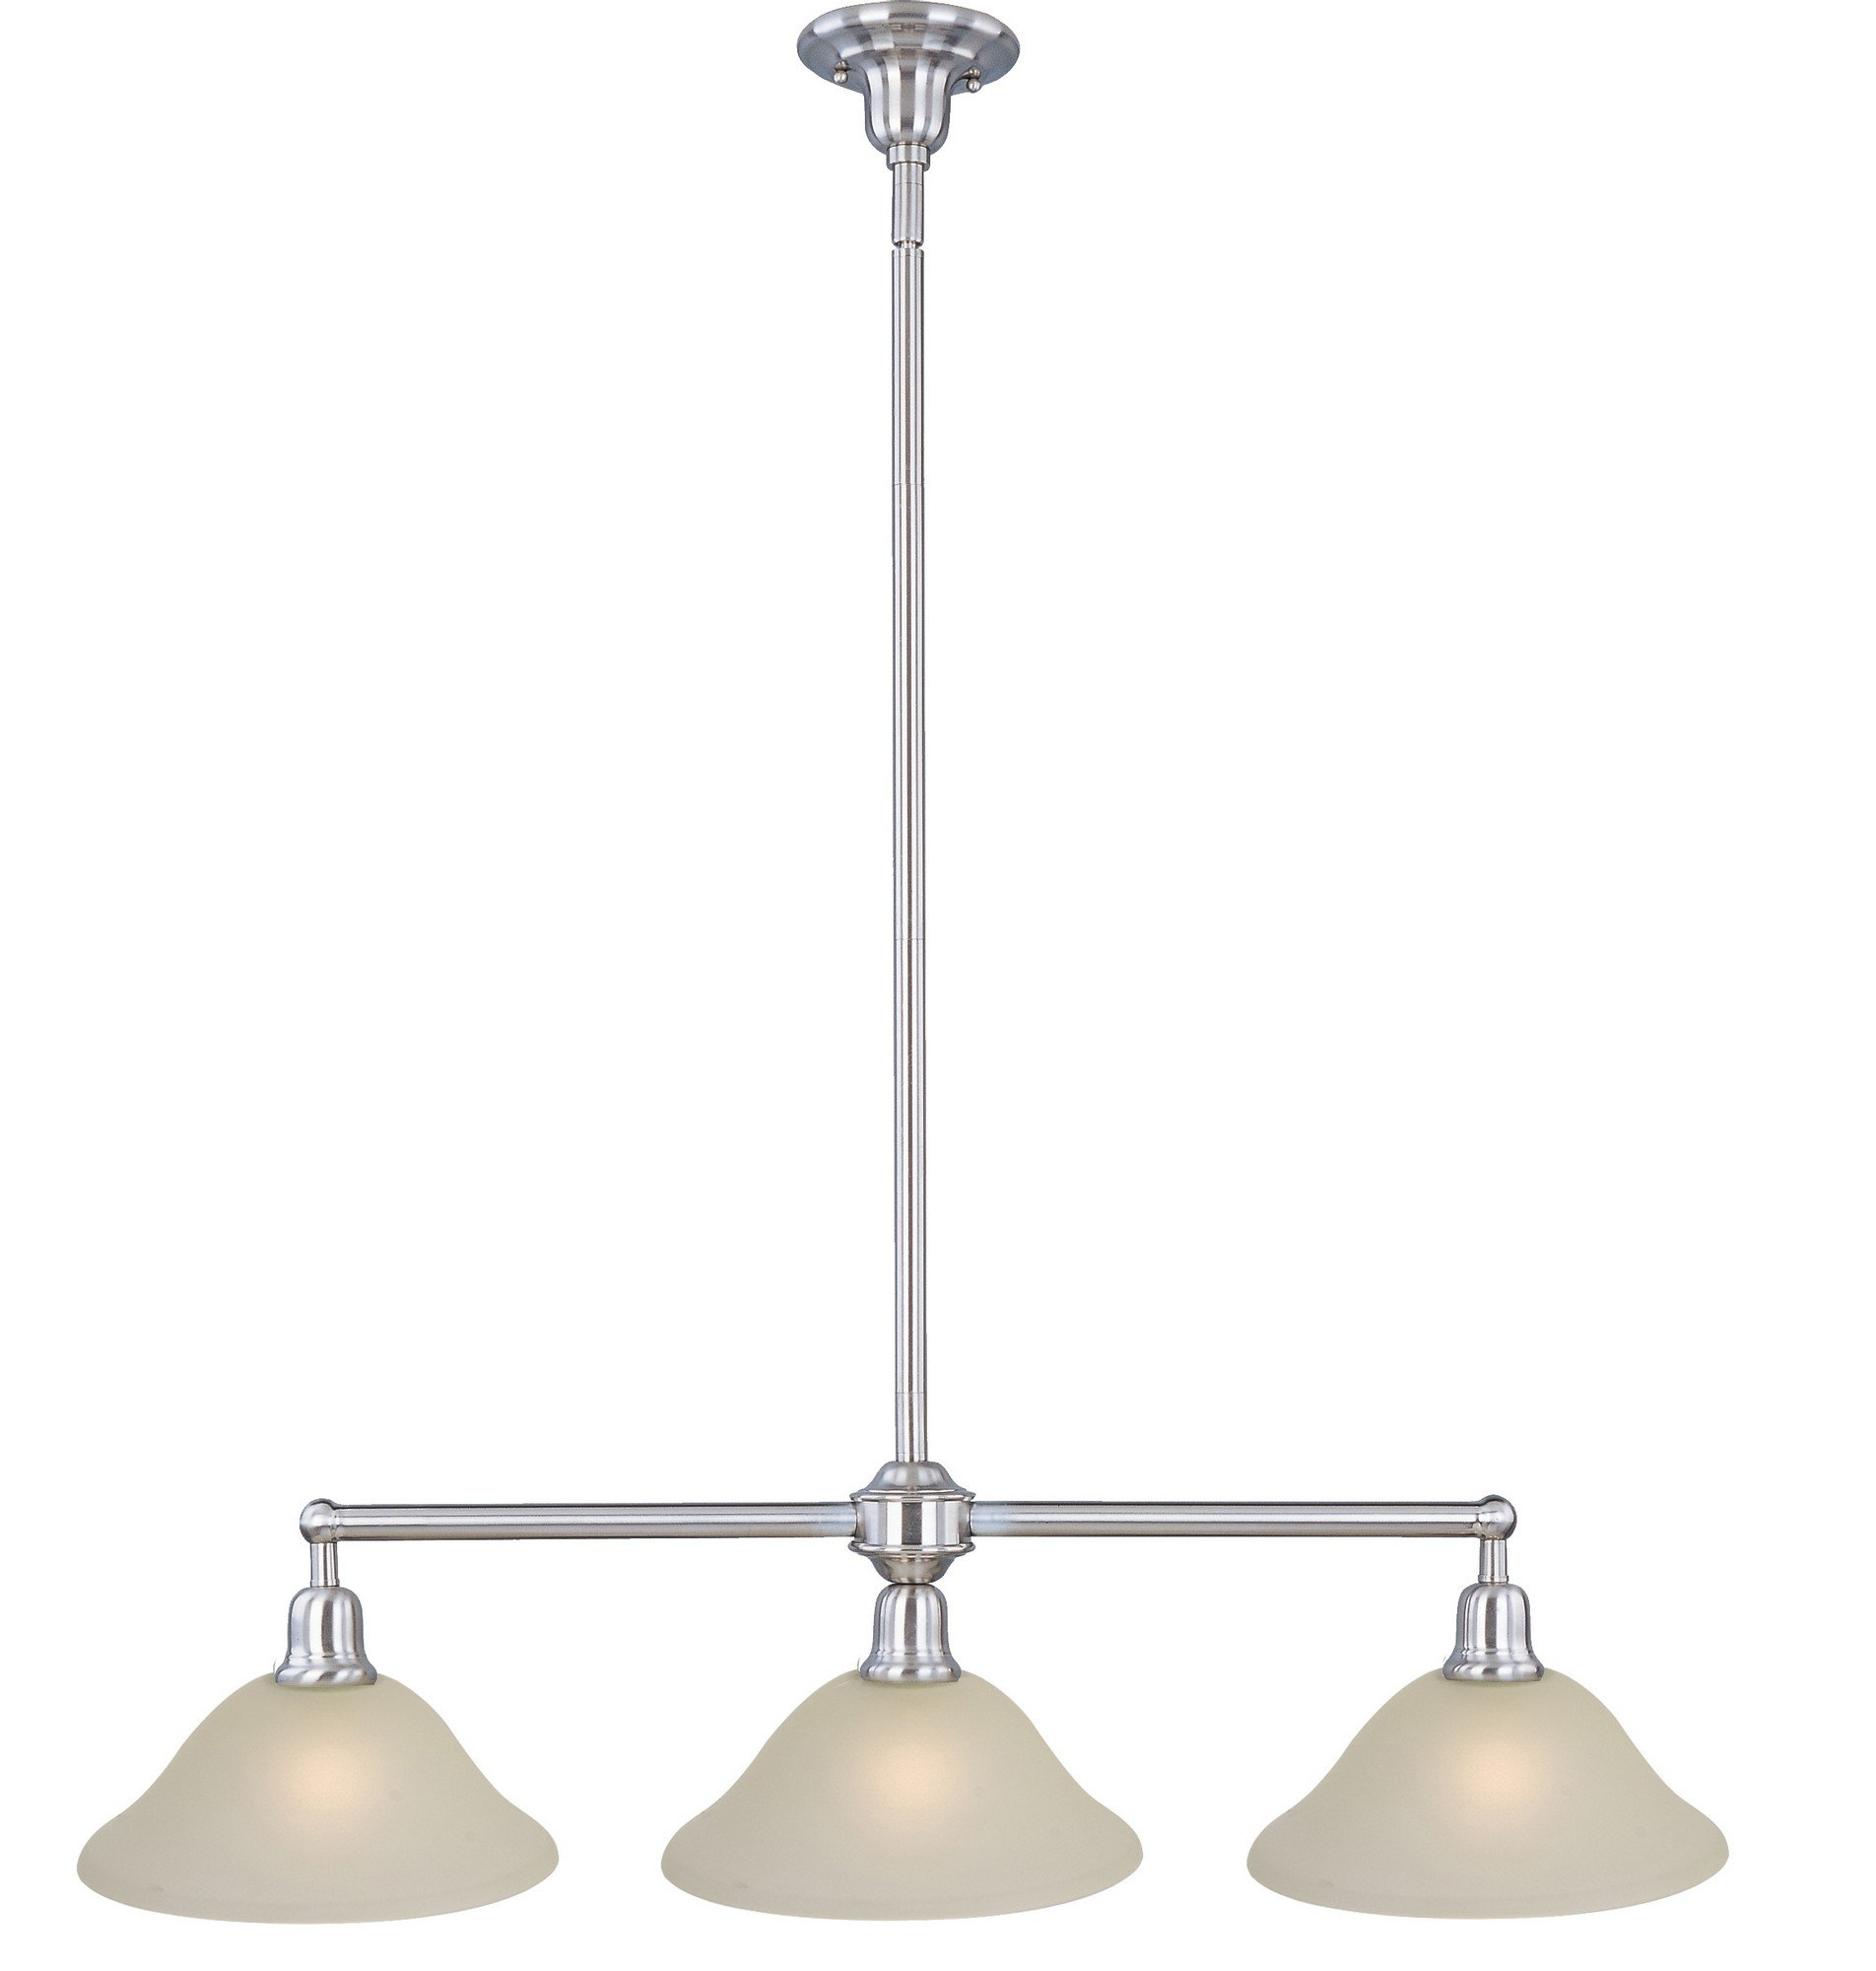 Maxim 11093SVSN Bel Air 3-Light Pendant, Satin Nickel Finish, Soft Vanilla Glass, MB Incandescent Incandescent Bulb , 12W Max., Damp Safety Rating, 3000K Color Temp, Opal Acrylic Shade Material, 700 Rated Lumens